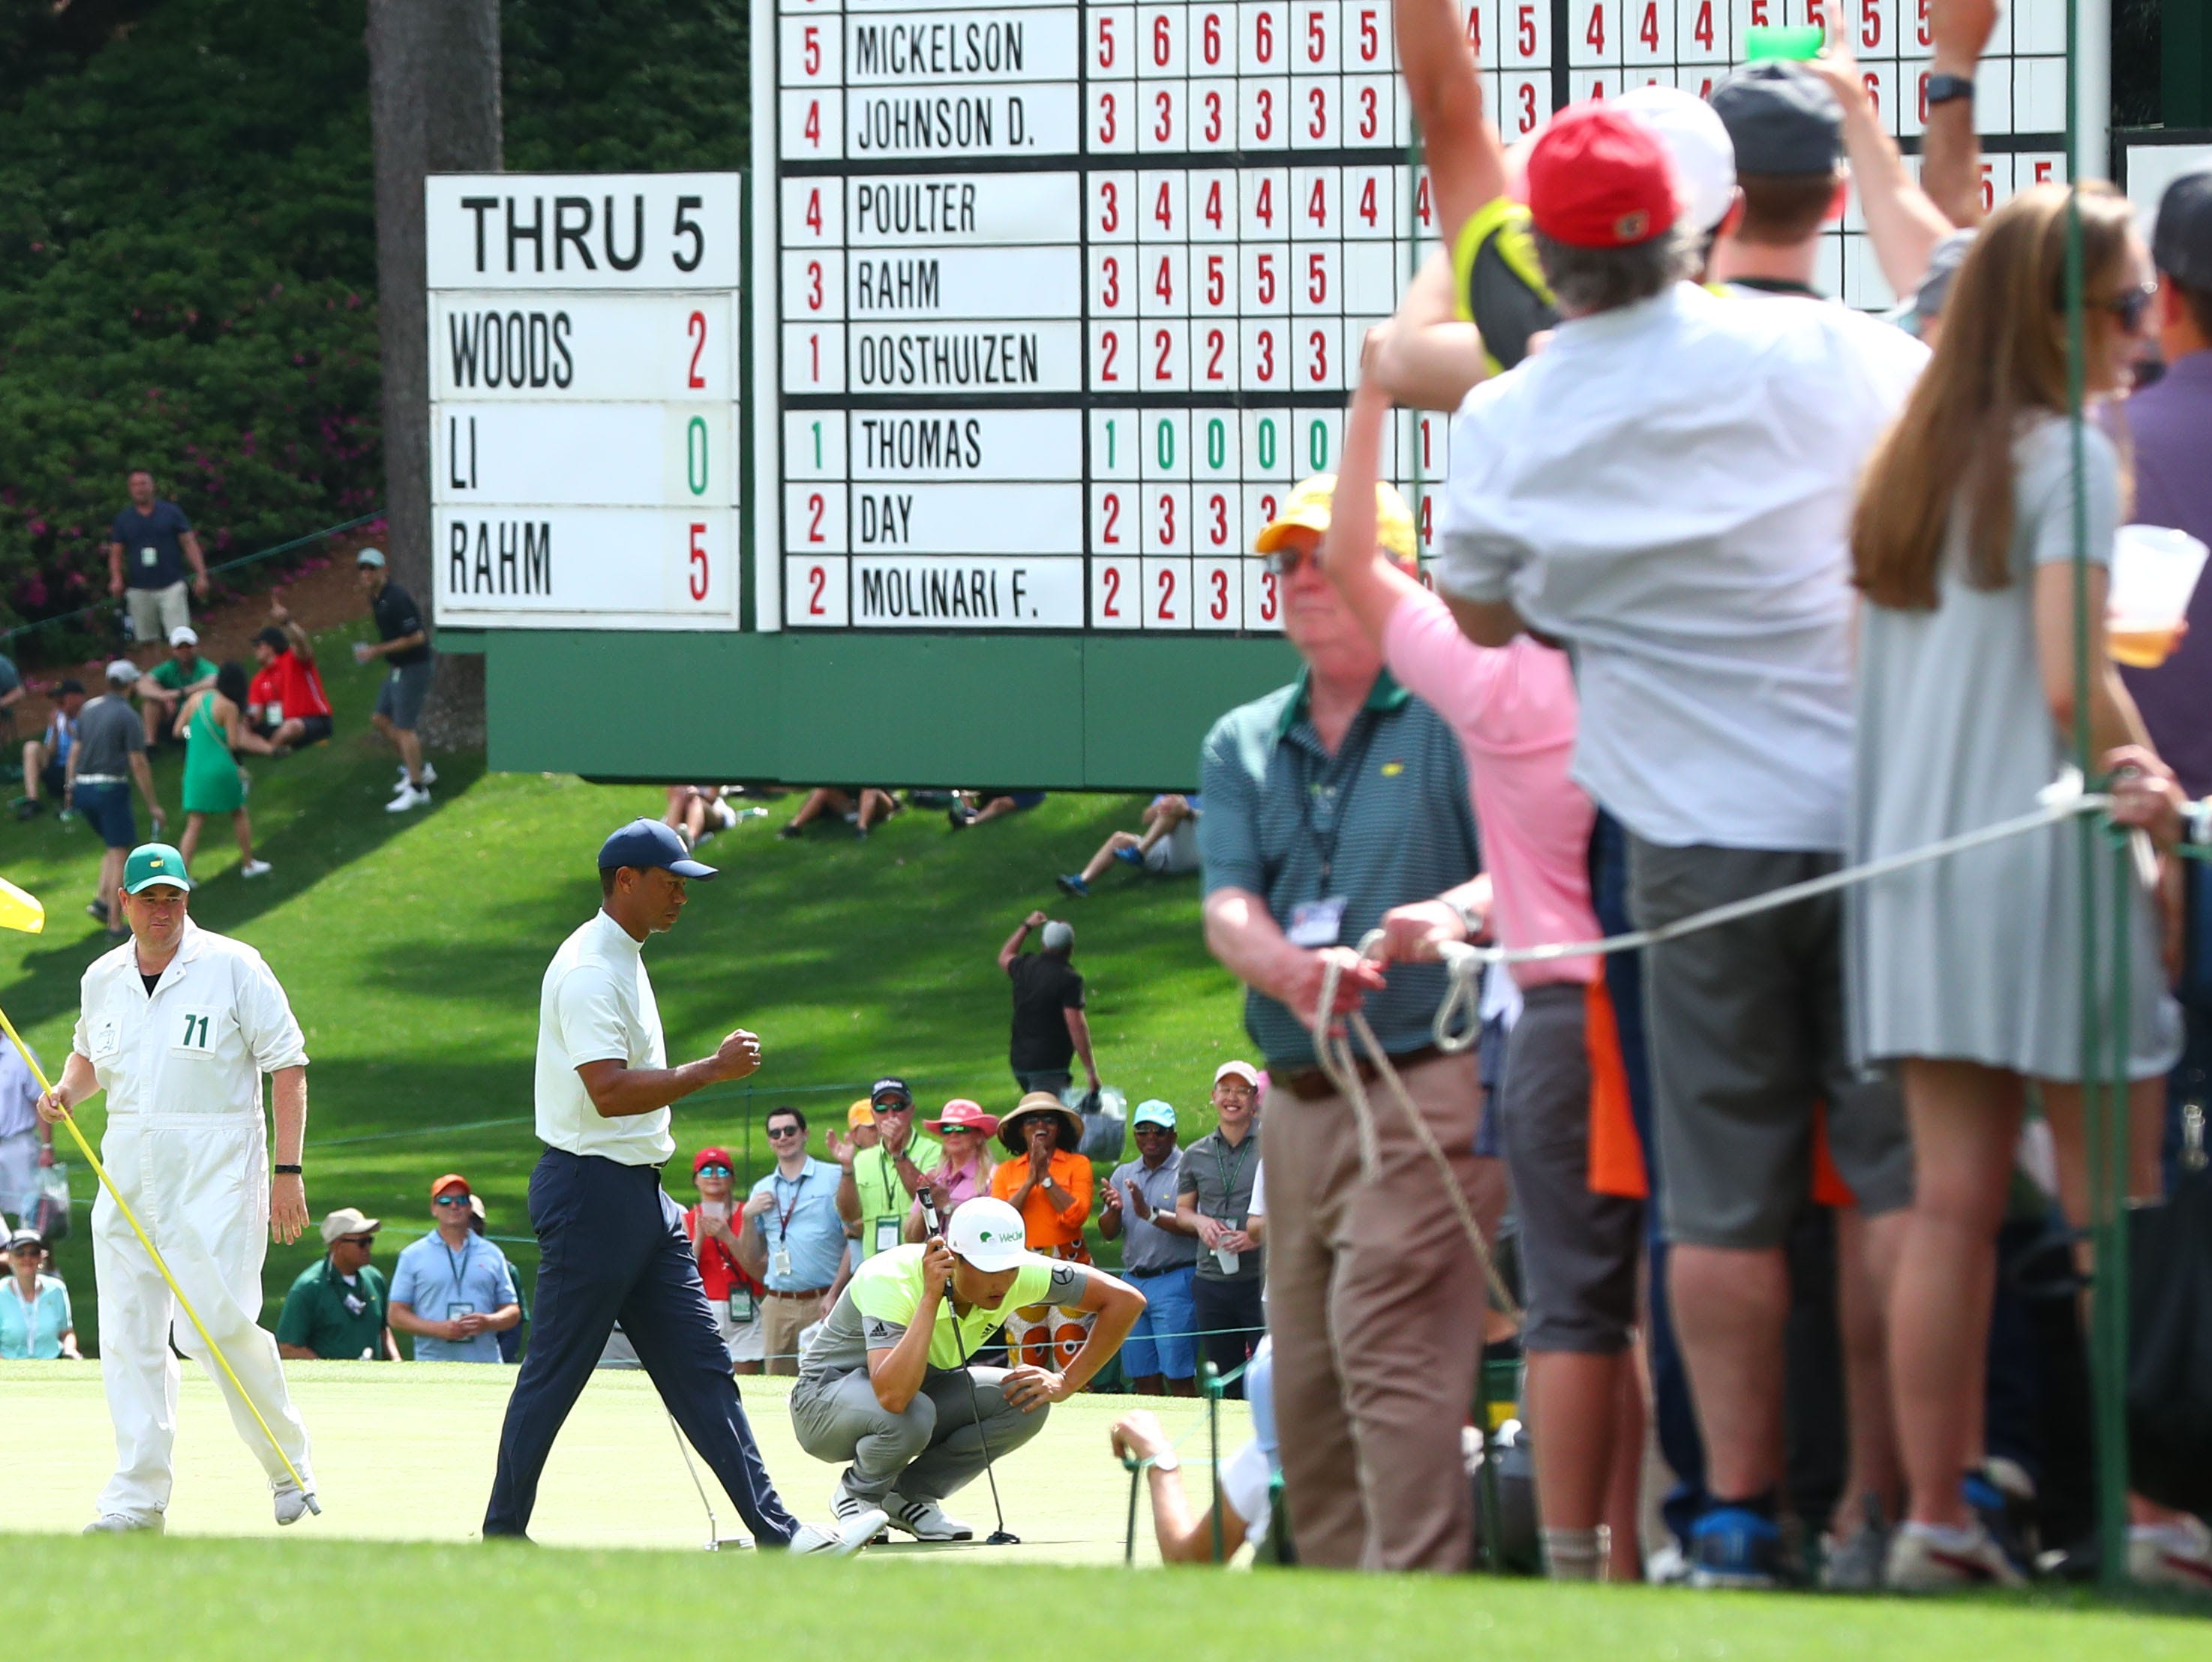 Apr 12, 2019; Augusta, GA, USA; Tiger Woods reacts on the 6th green during the second round of The Masters golf tournament at Augusta National Golf Club. Mandatory Credit: Rob Schumacher-USA TODAY Sports